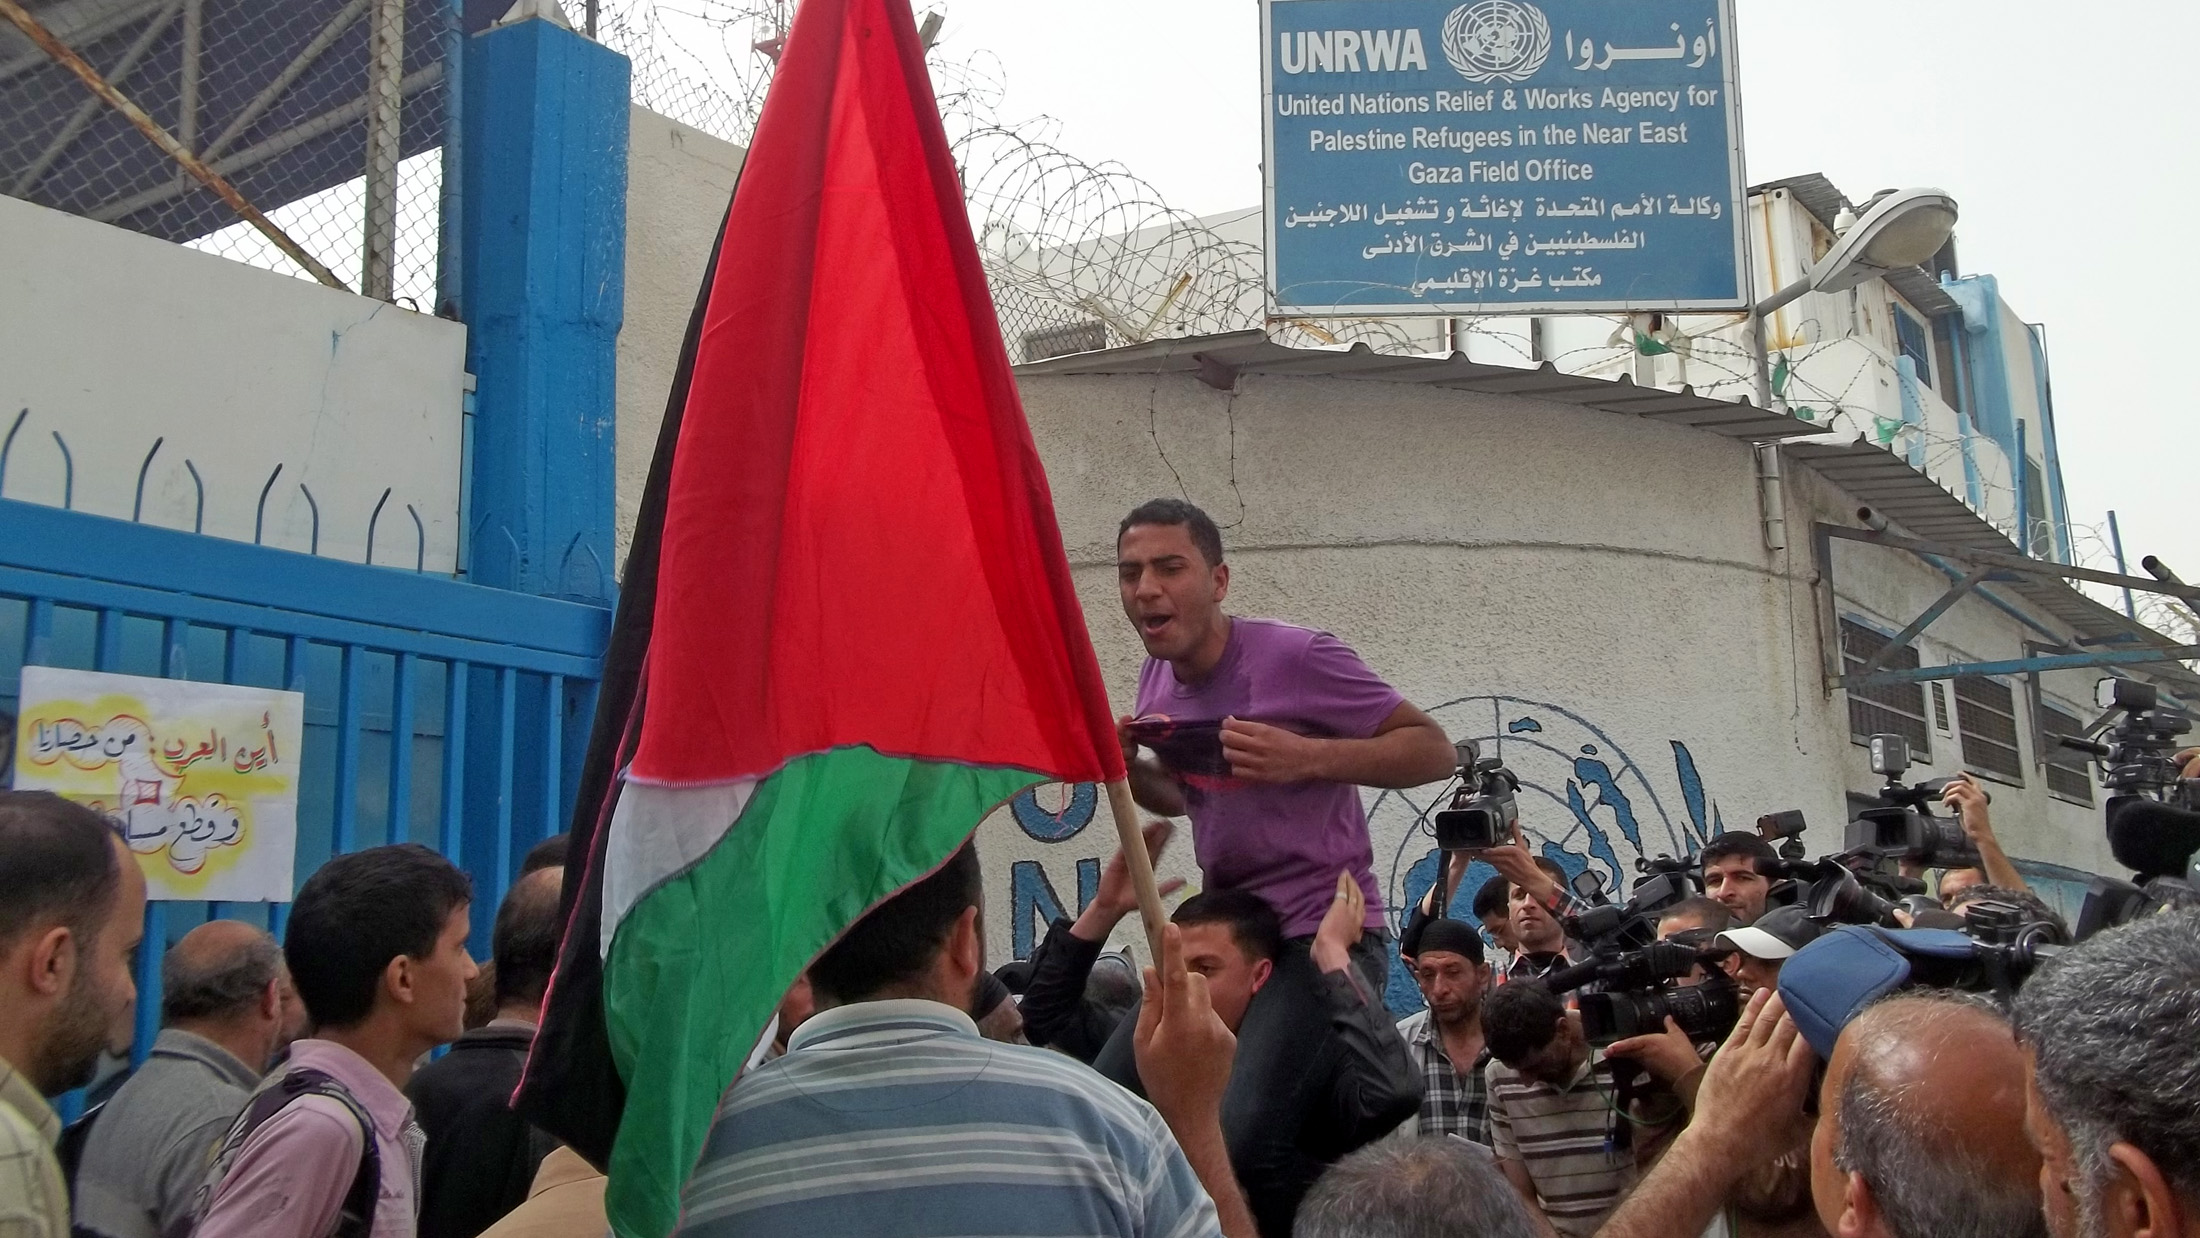 Palestinian refugees have been protesting outside the office of the UN agency for Palestinian refugees (UNRWA) in Gaza following cuts to a cash assistance programme